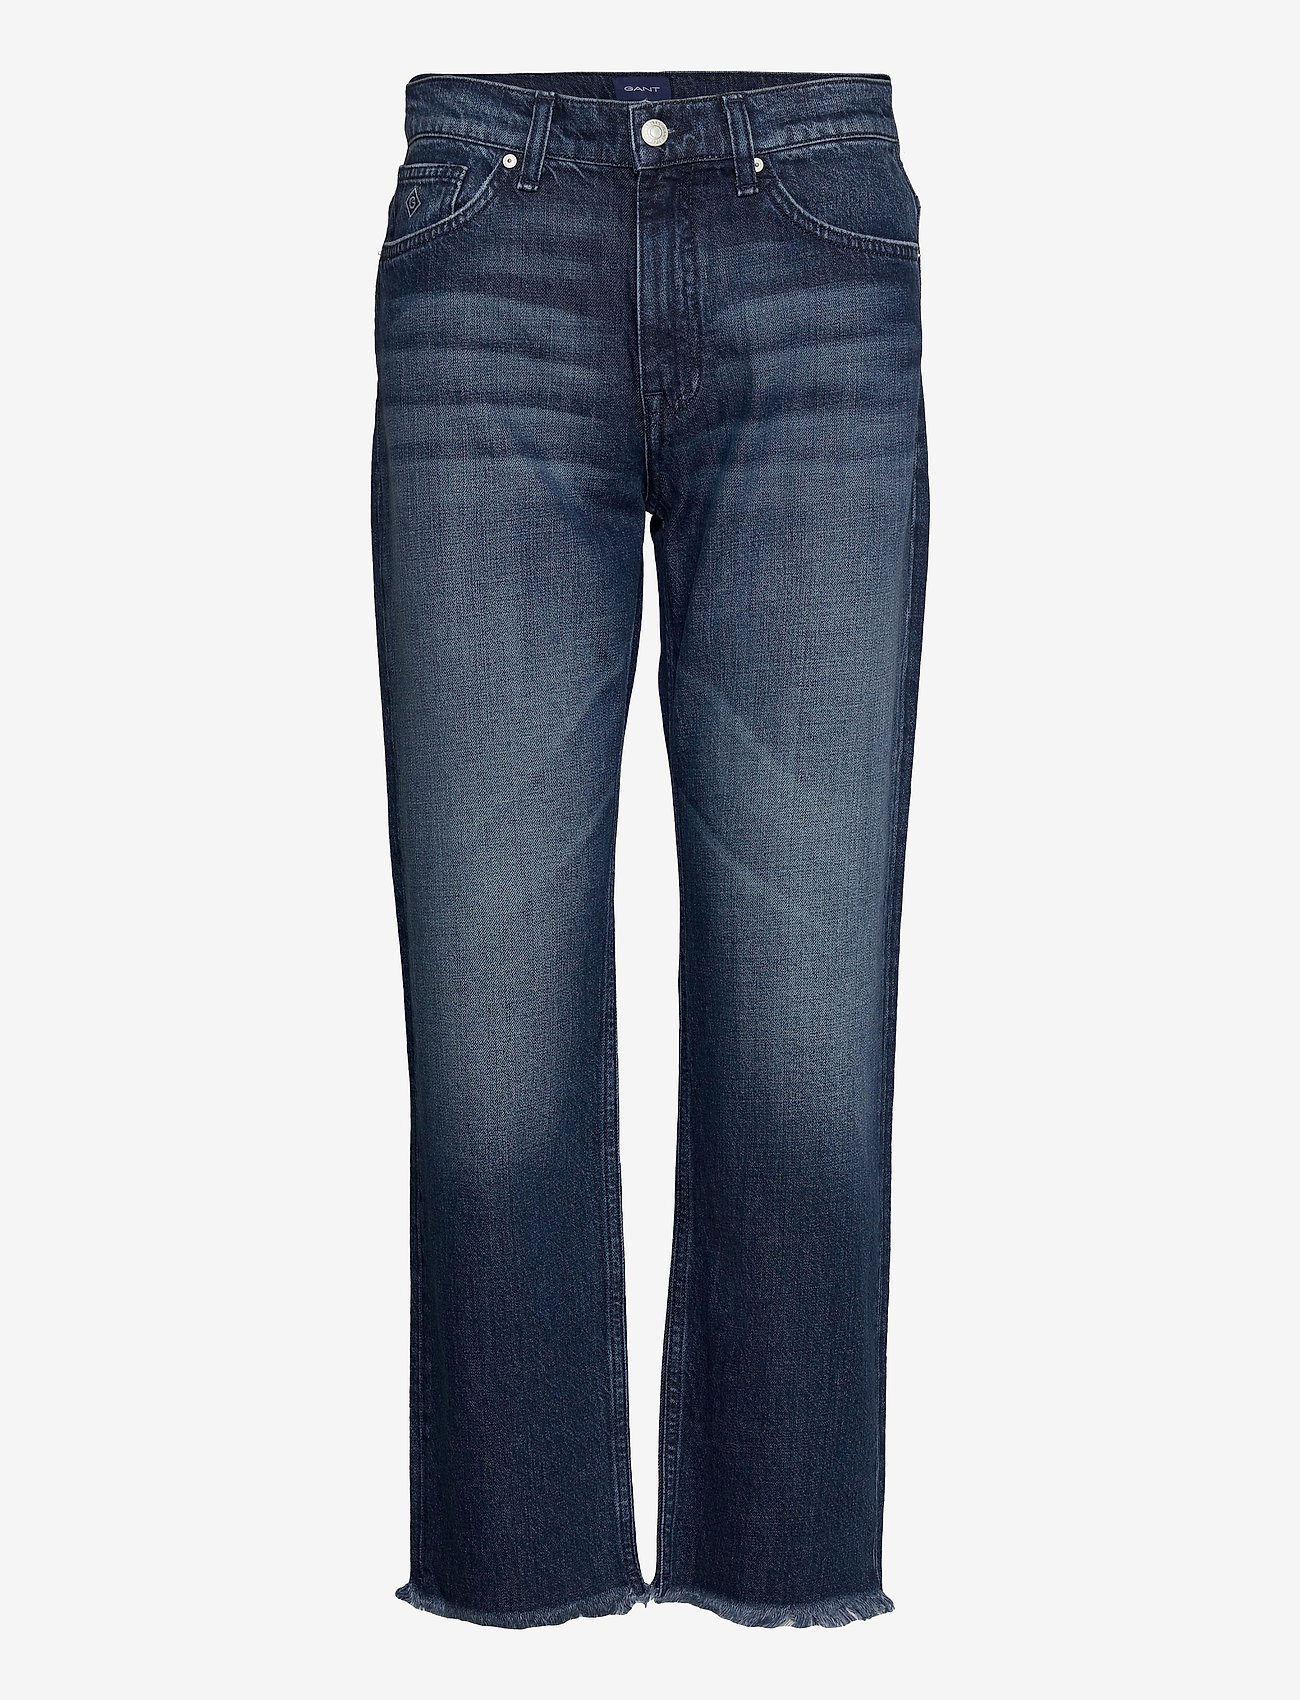 GANT - D1. CROPPED AUTHENTIC JEANS - straight jeans - dark blue broken in - 0